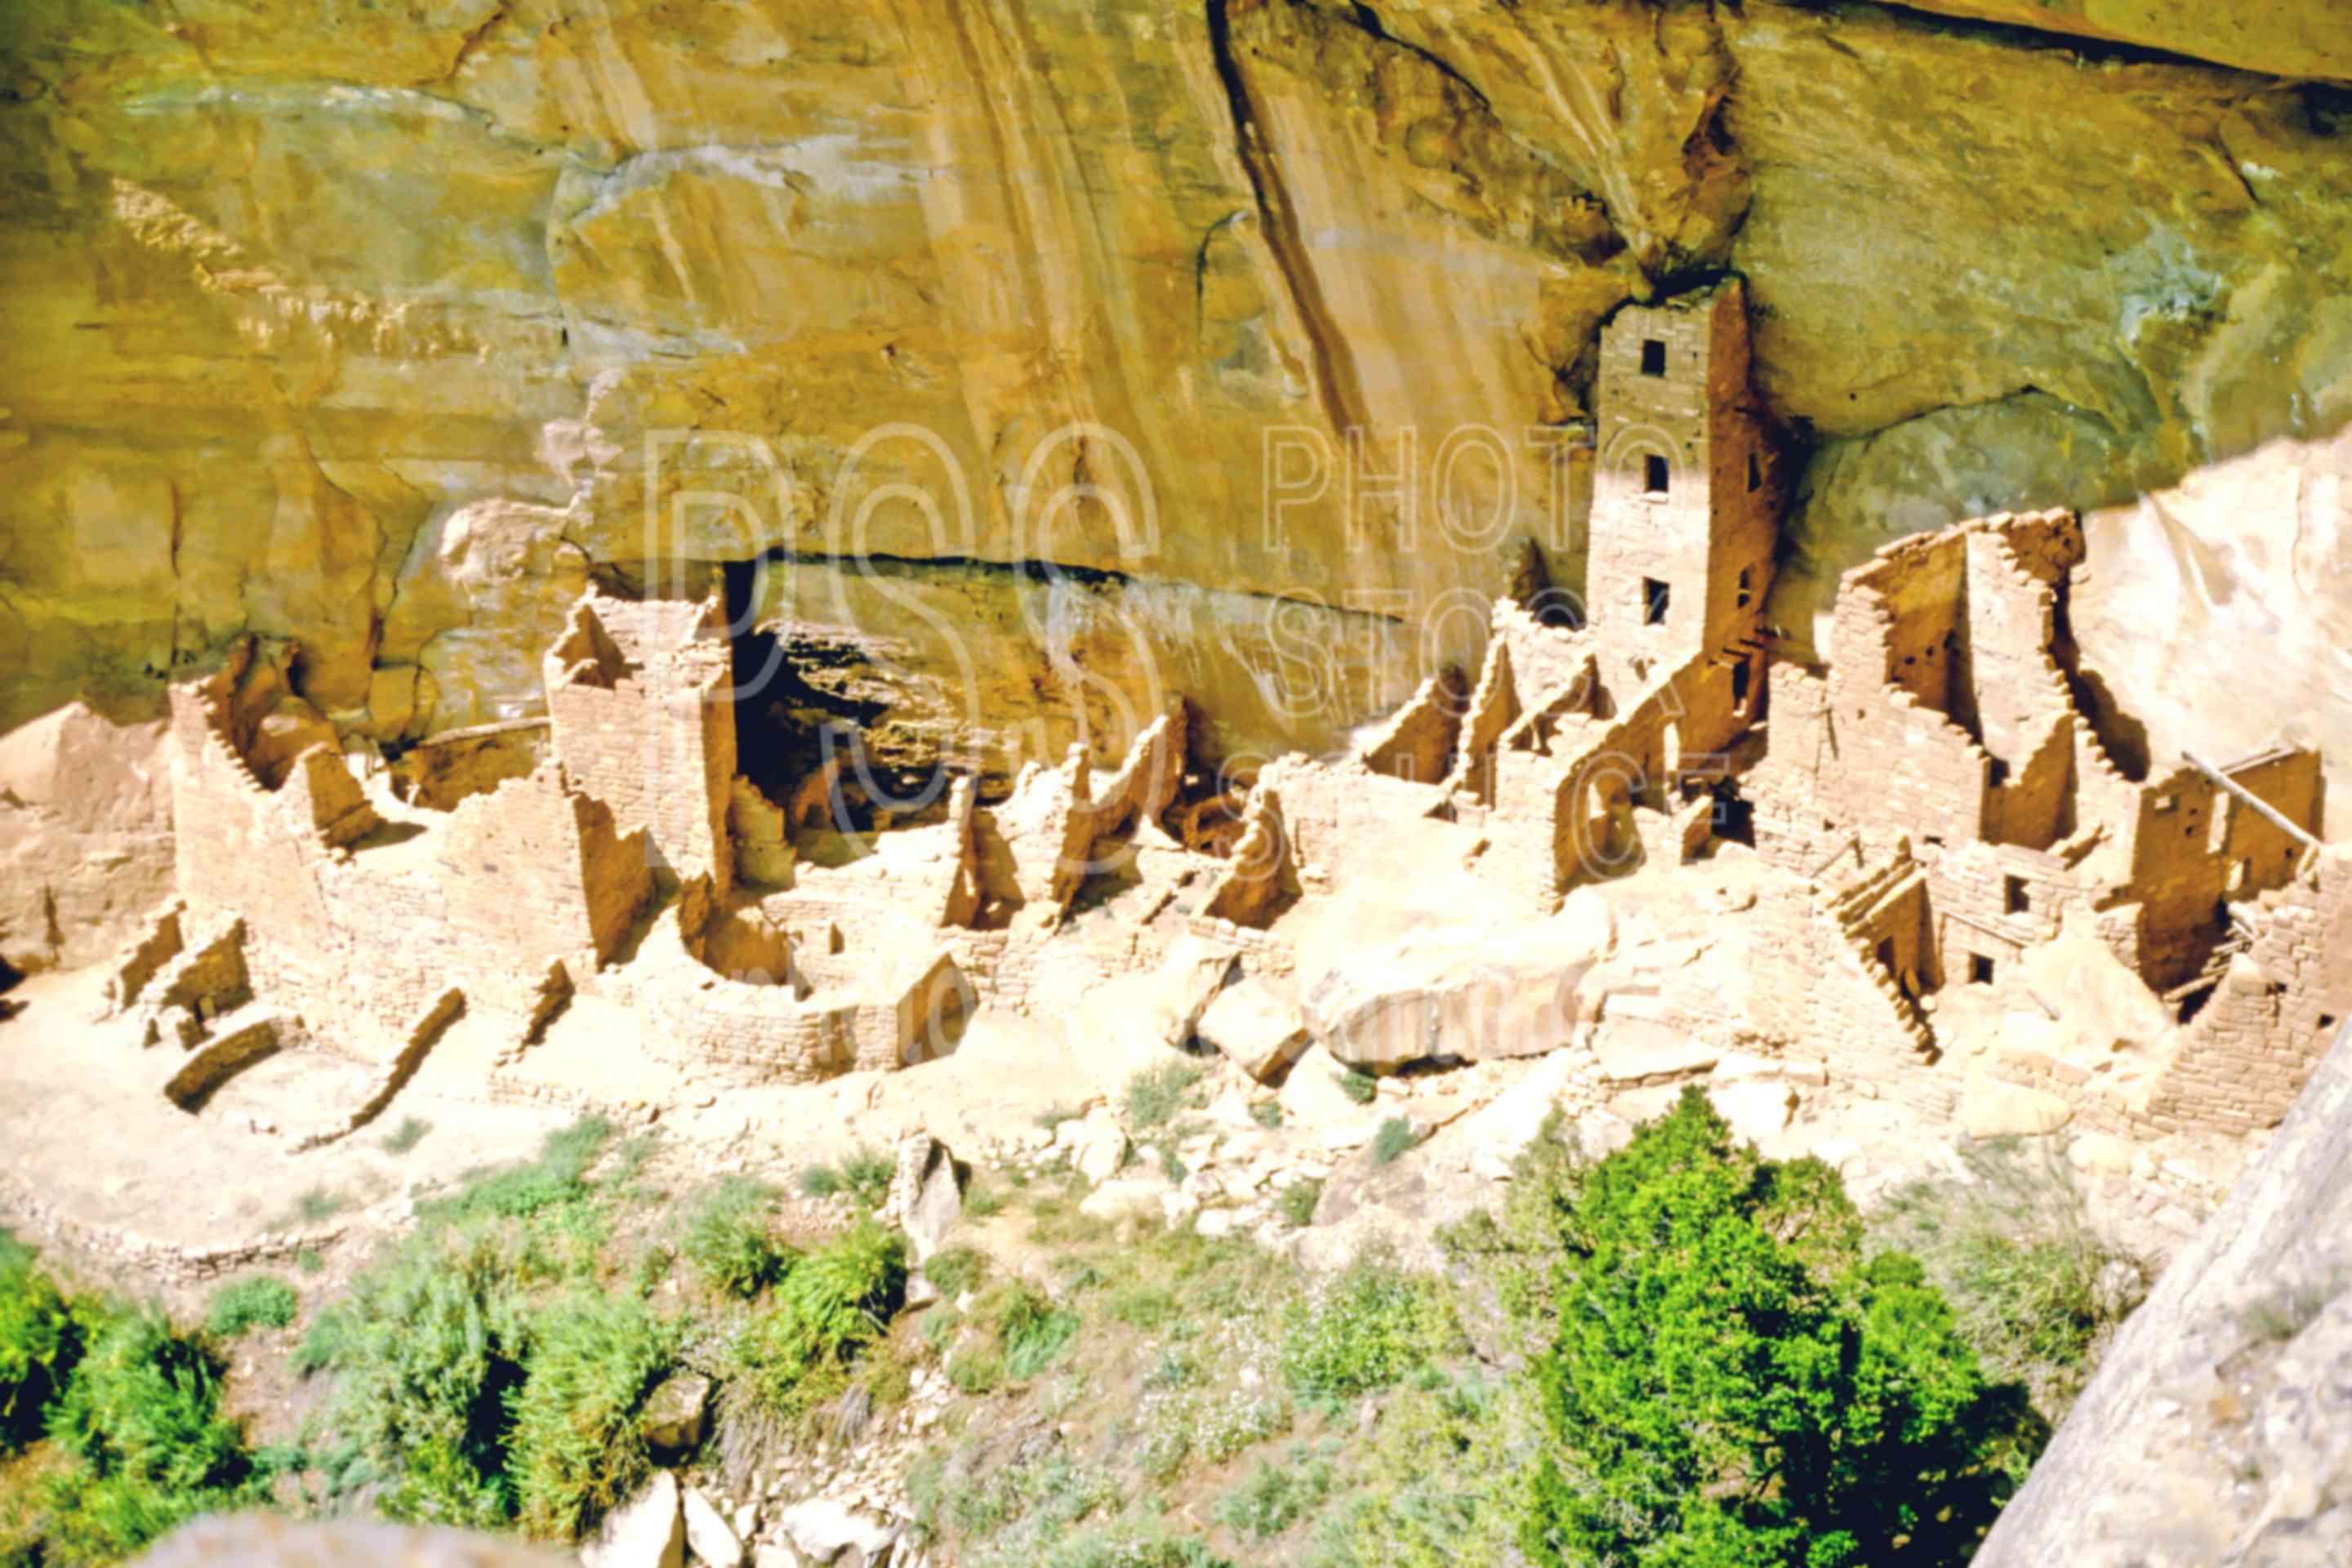 Square Tower House,anasazi,cliff dwelling,dwelling,tower,usas,national park,nature,national parks,native american